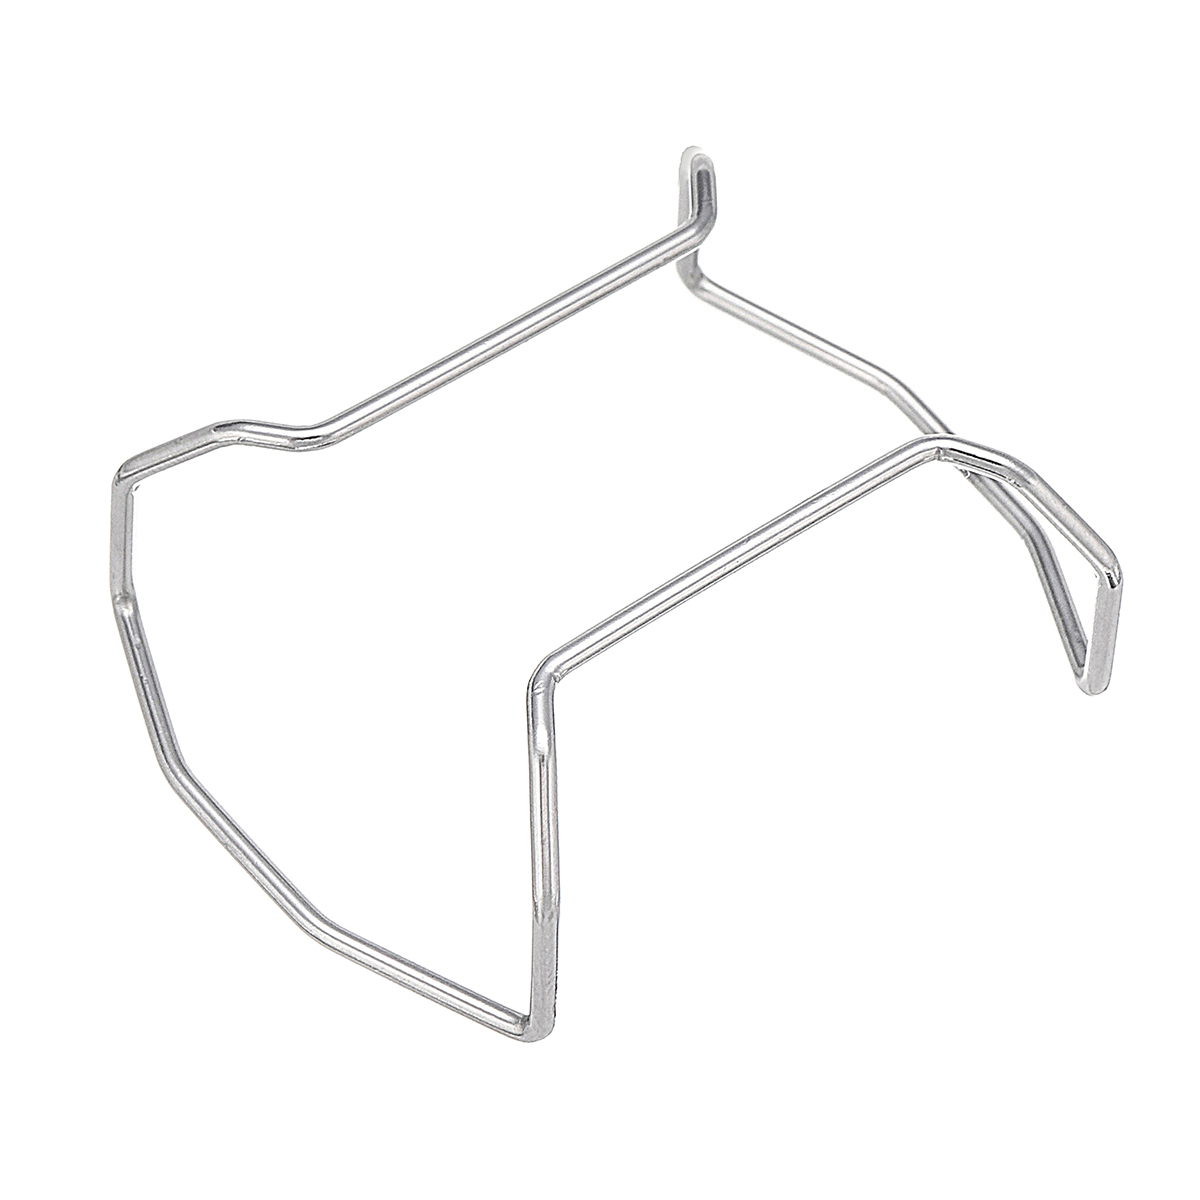 Black Silver Protectors Wire Guards Watch Guard For G